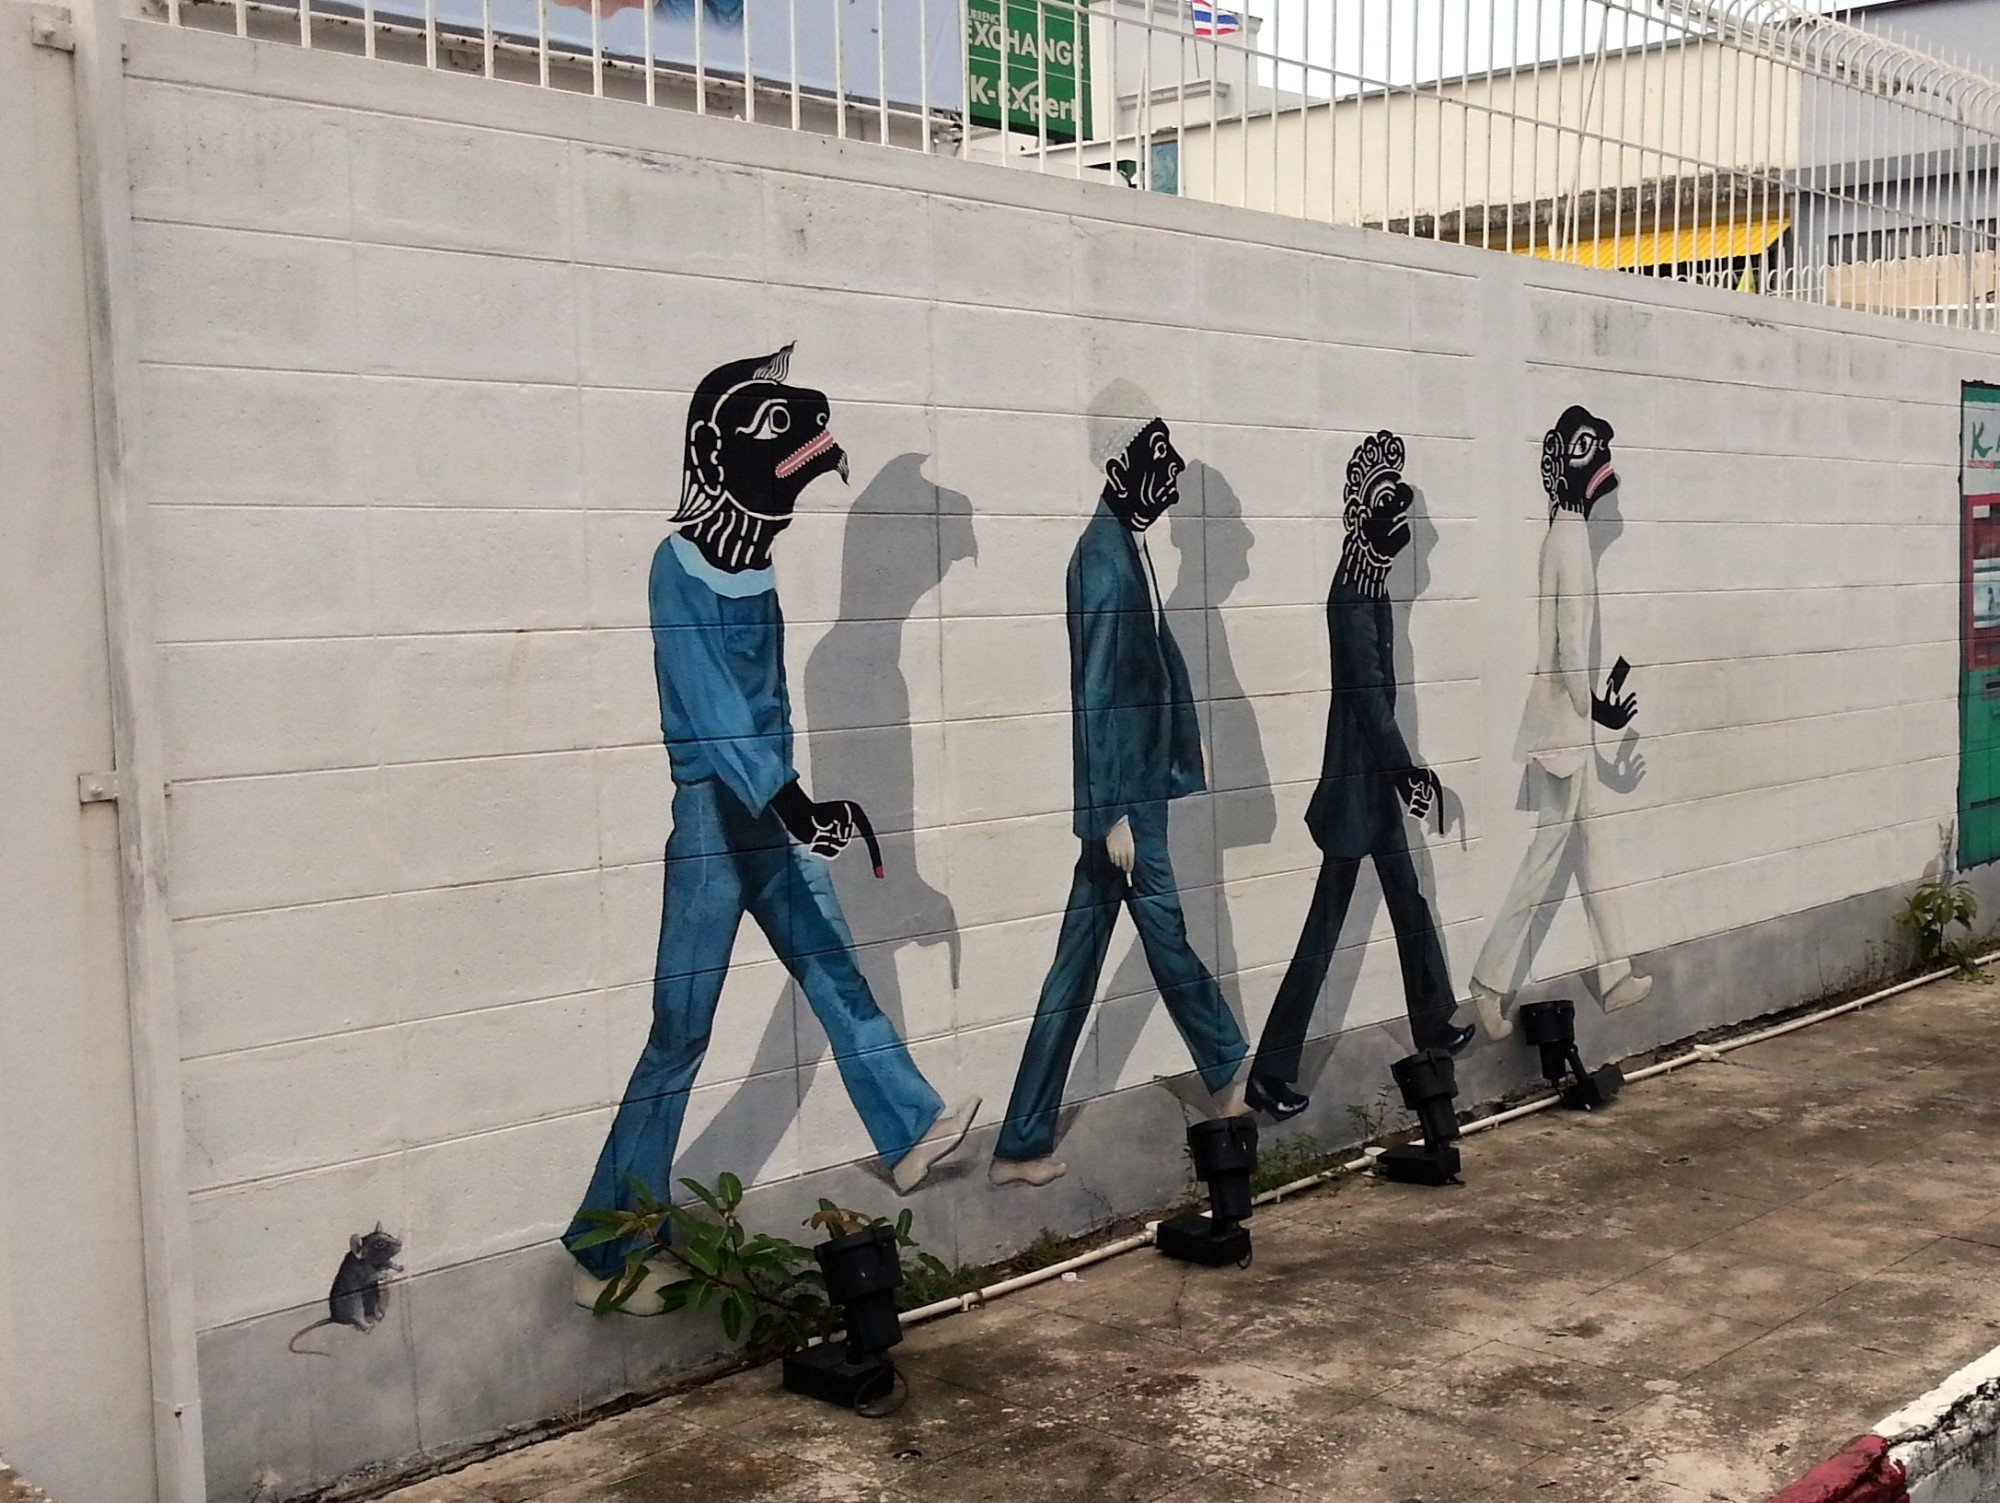 Nang Talung Characters in Suits mural in Songkhla